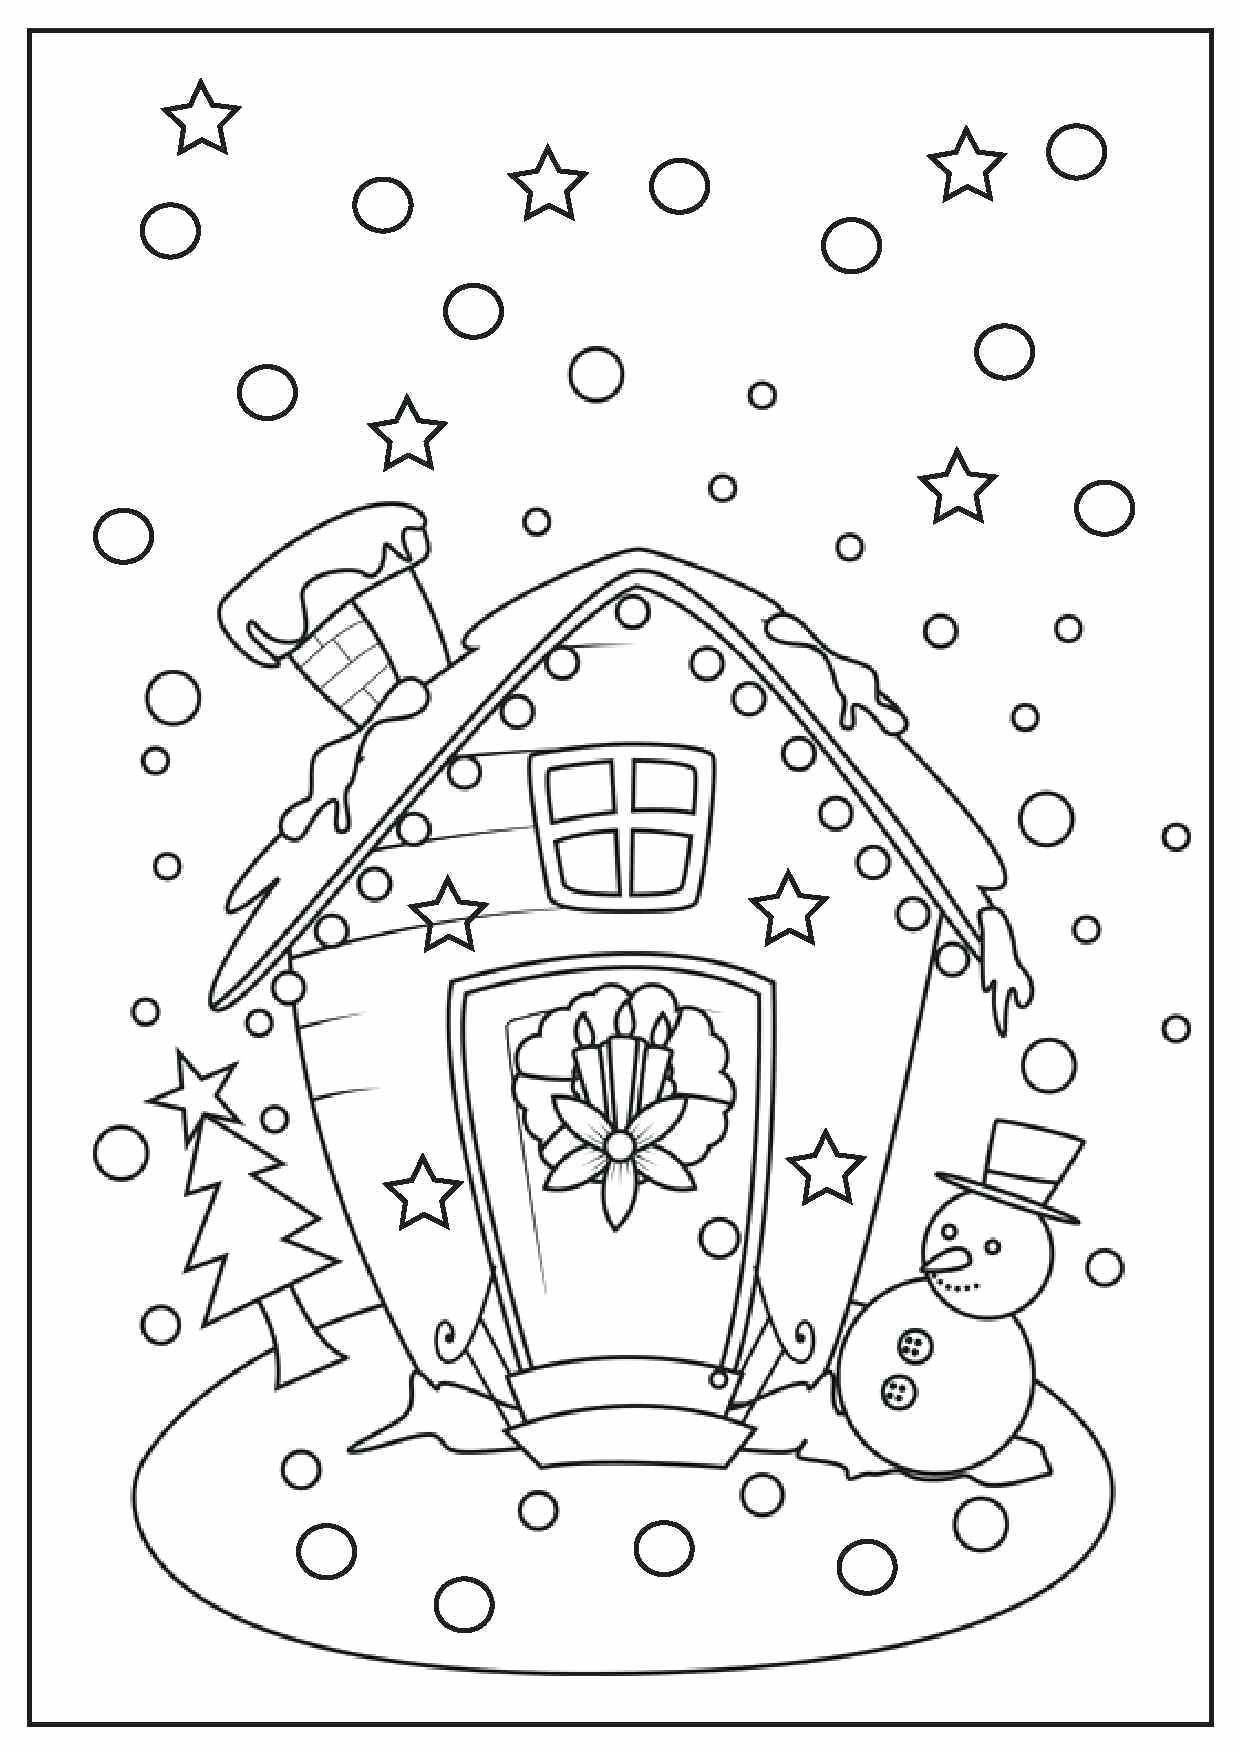 medium resolution of 3 Free Math Worksheets Second Grade 2 Subtraction Subtracting 1 Digi…    Printable christmas coloring pages